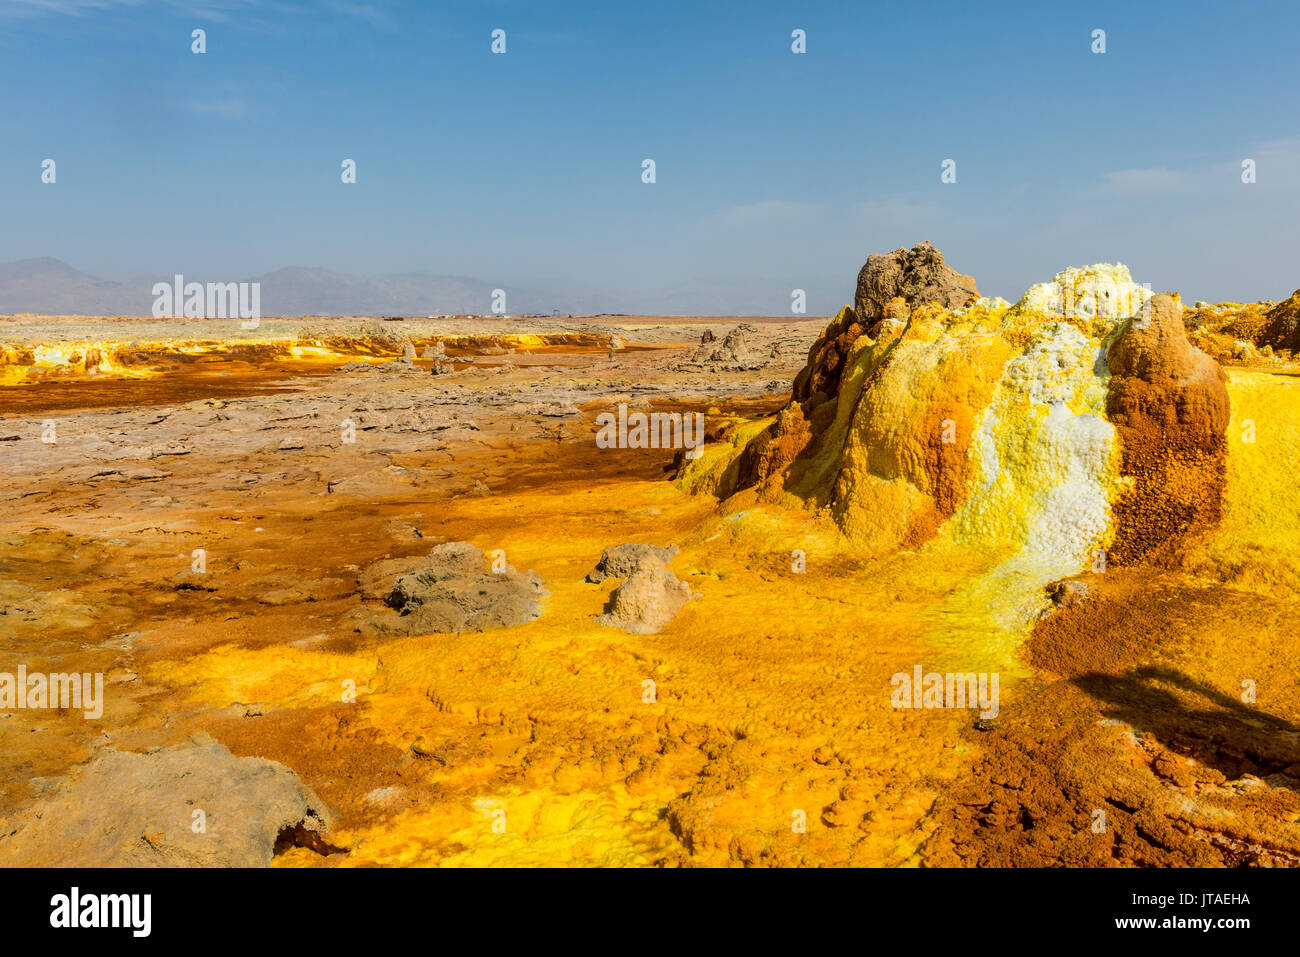 colourful spings of acid in dallol hottest place on earth danakil